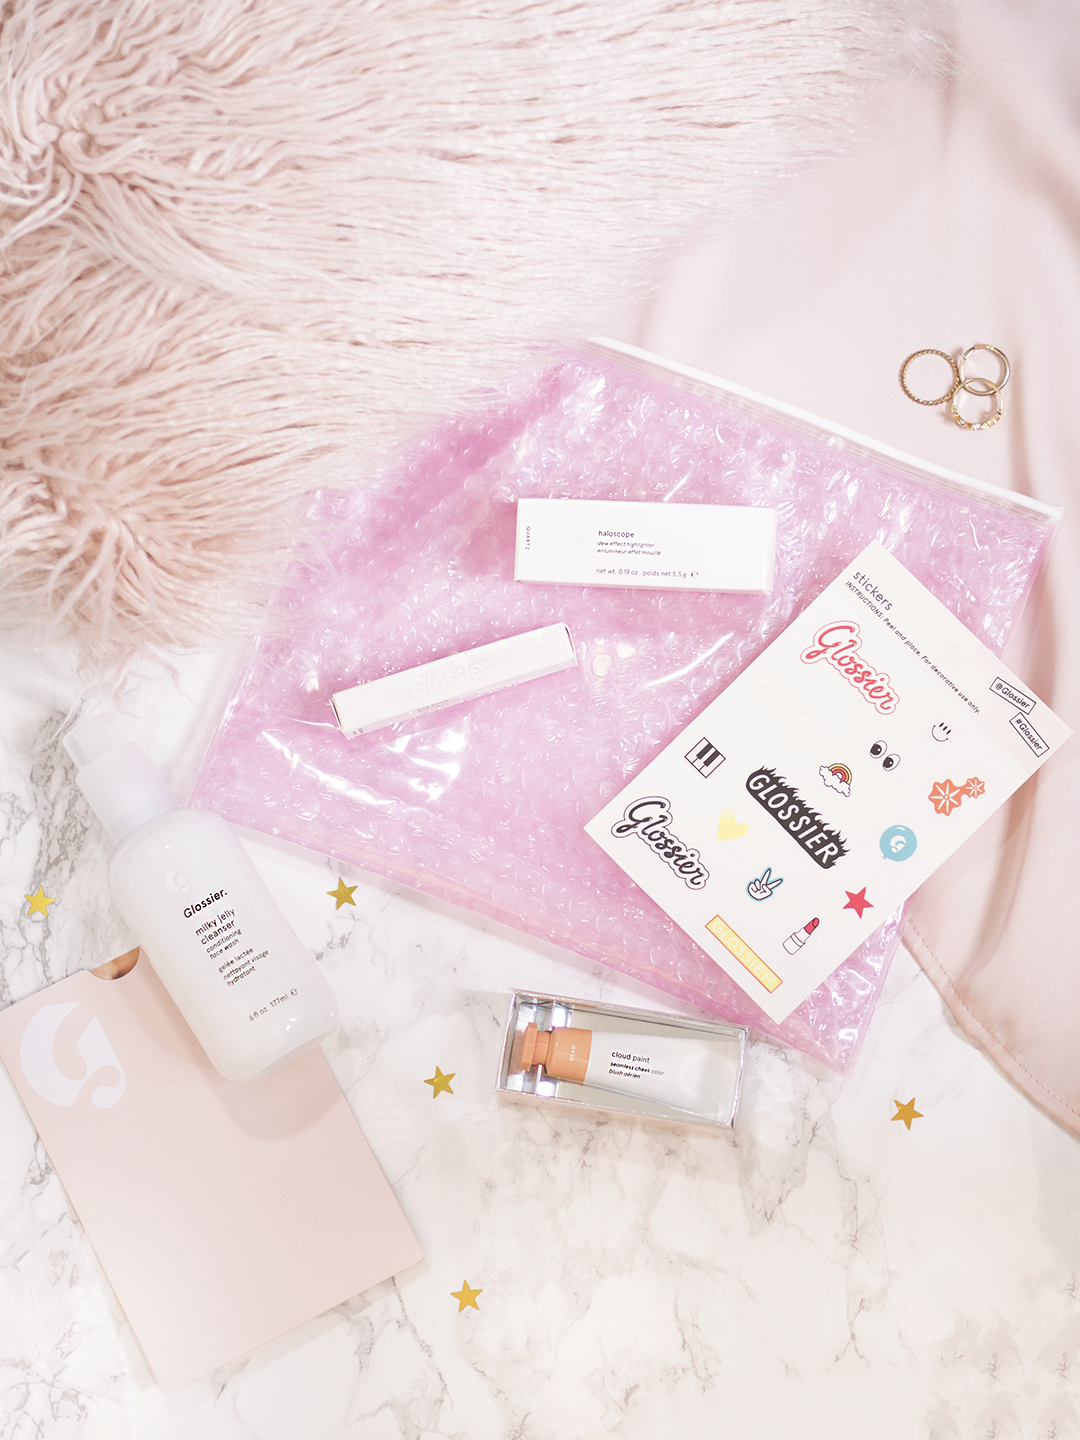 Glossier Haul and First Impressions